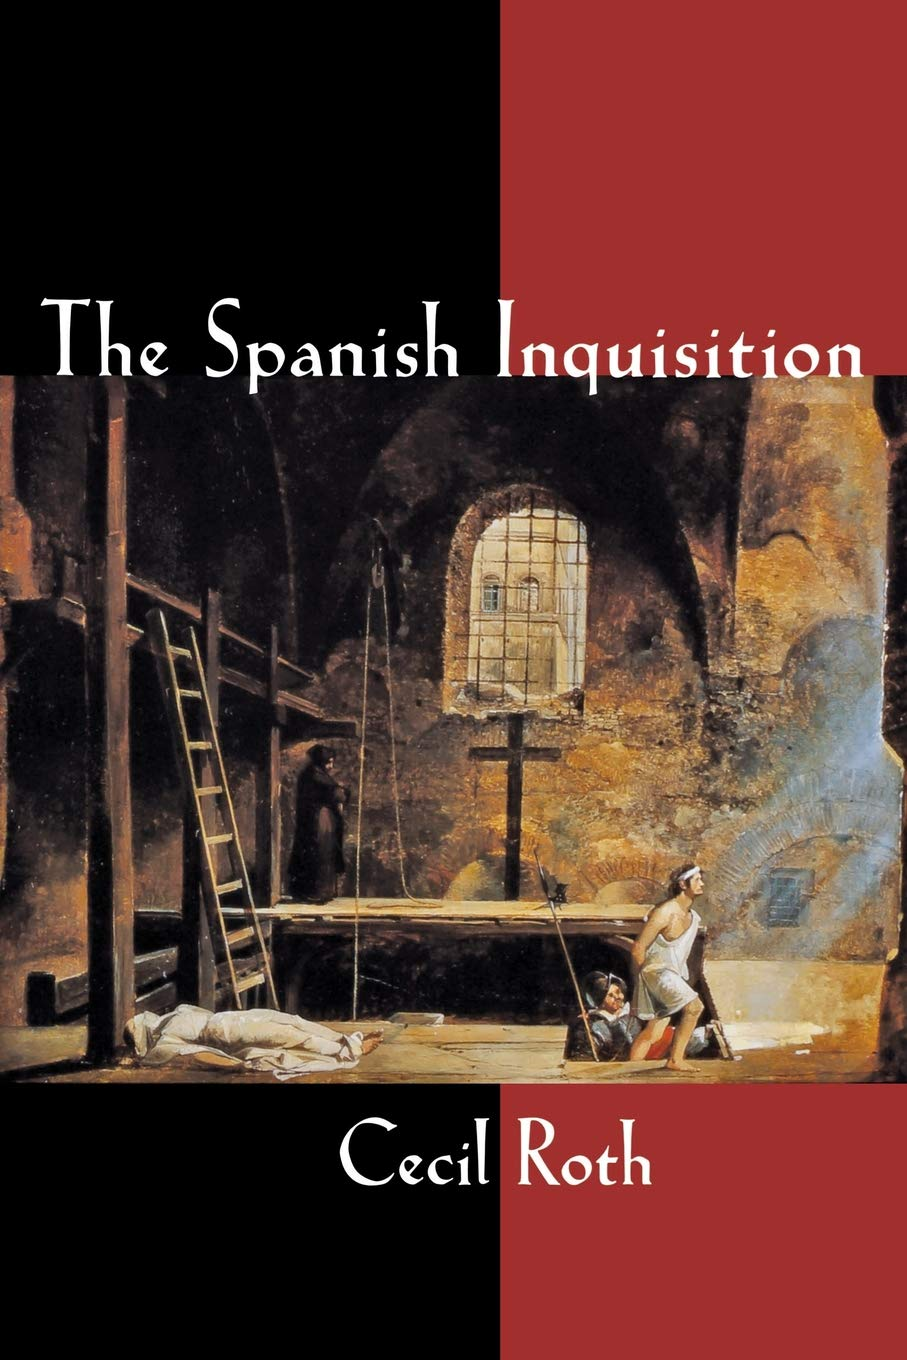 The Spanish Inquisition: Cecil Roth: 9780393002553: Amazon.com: Books